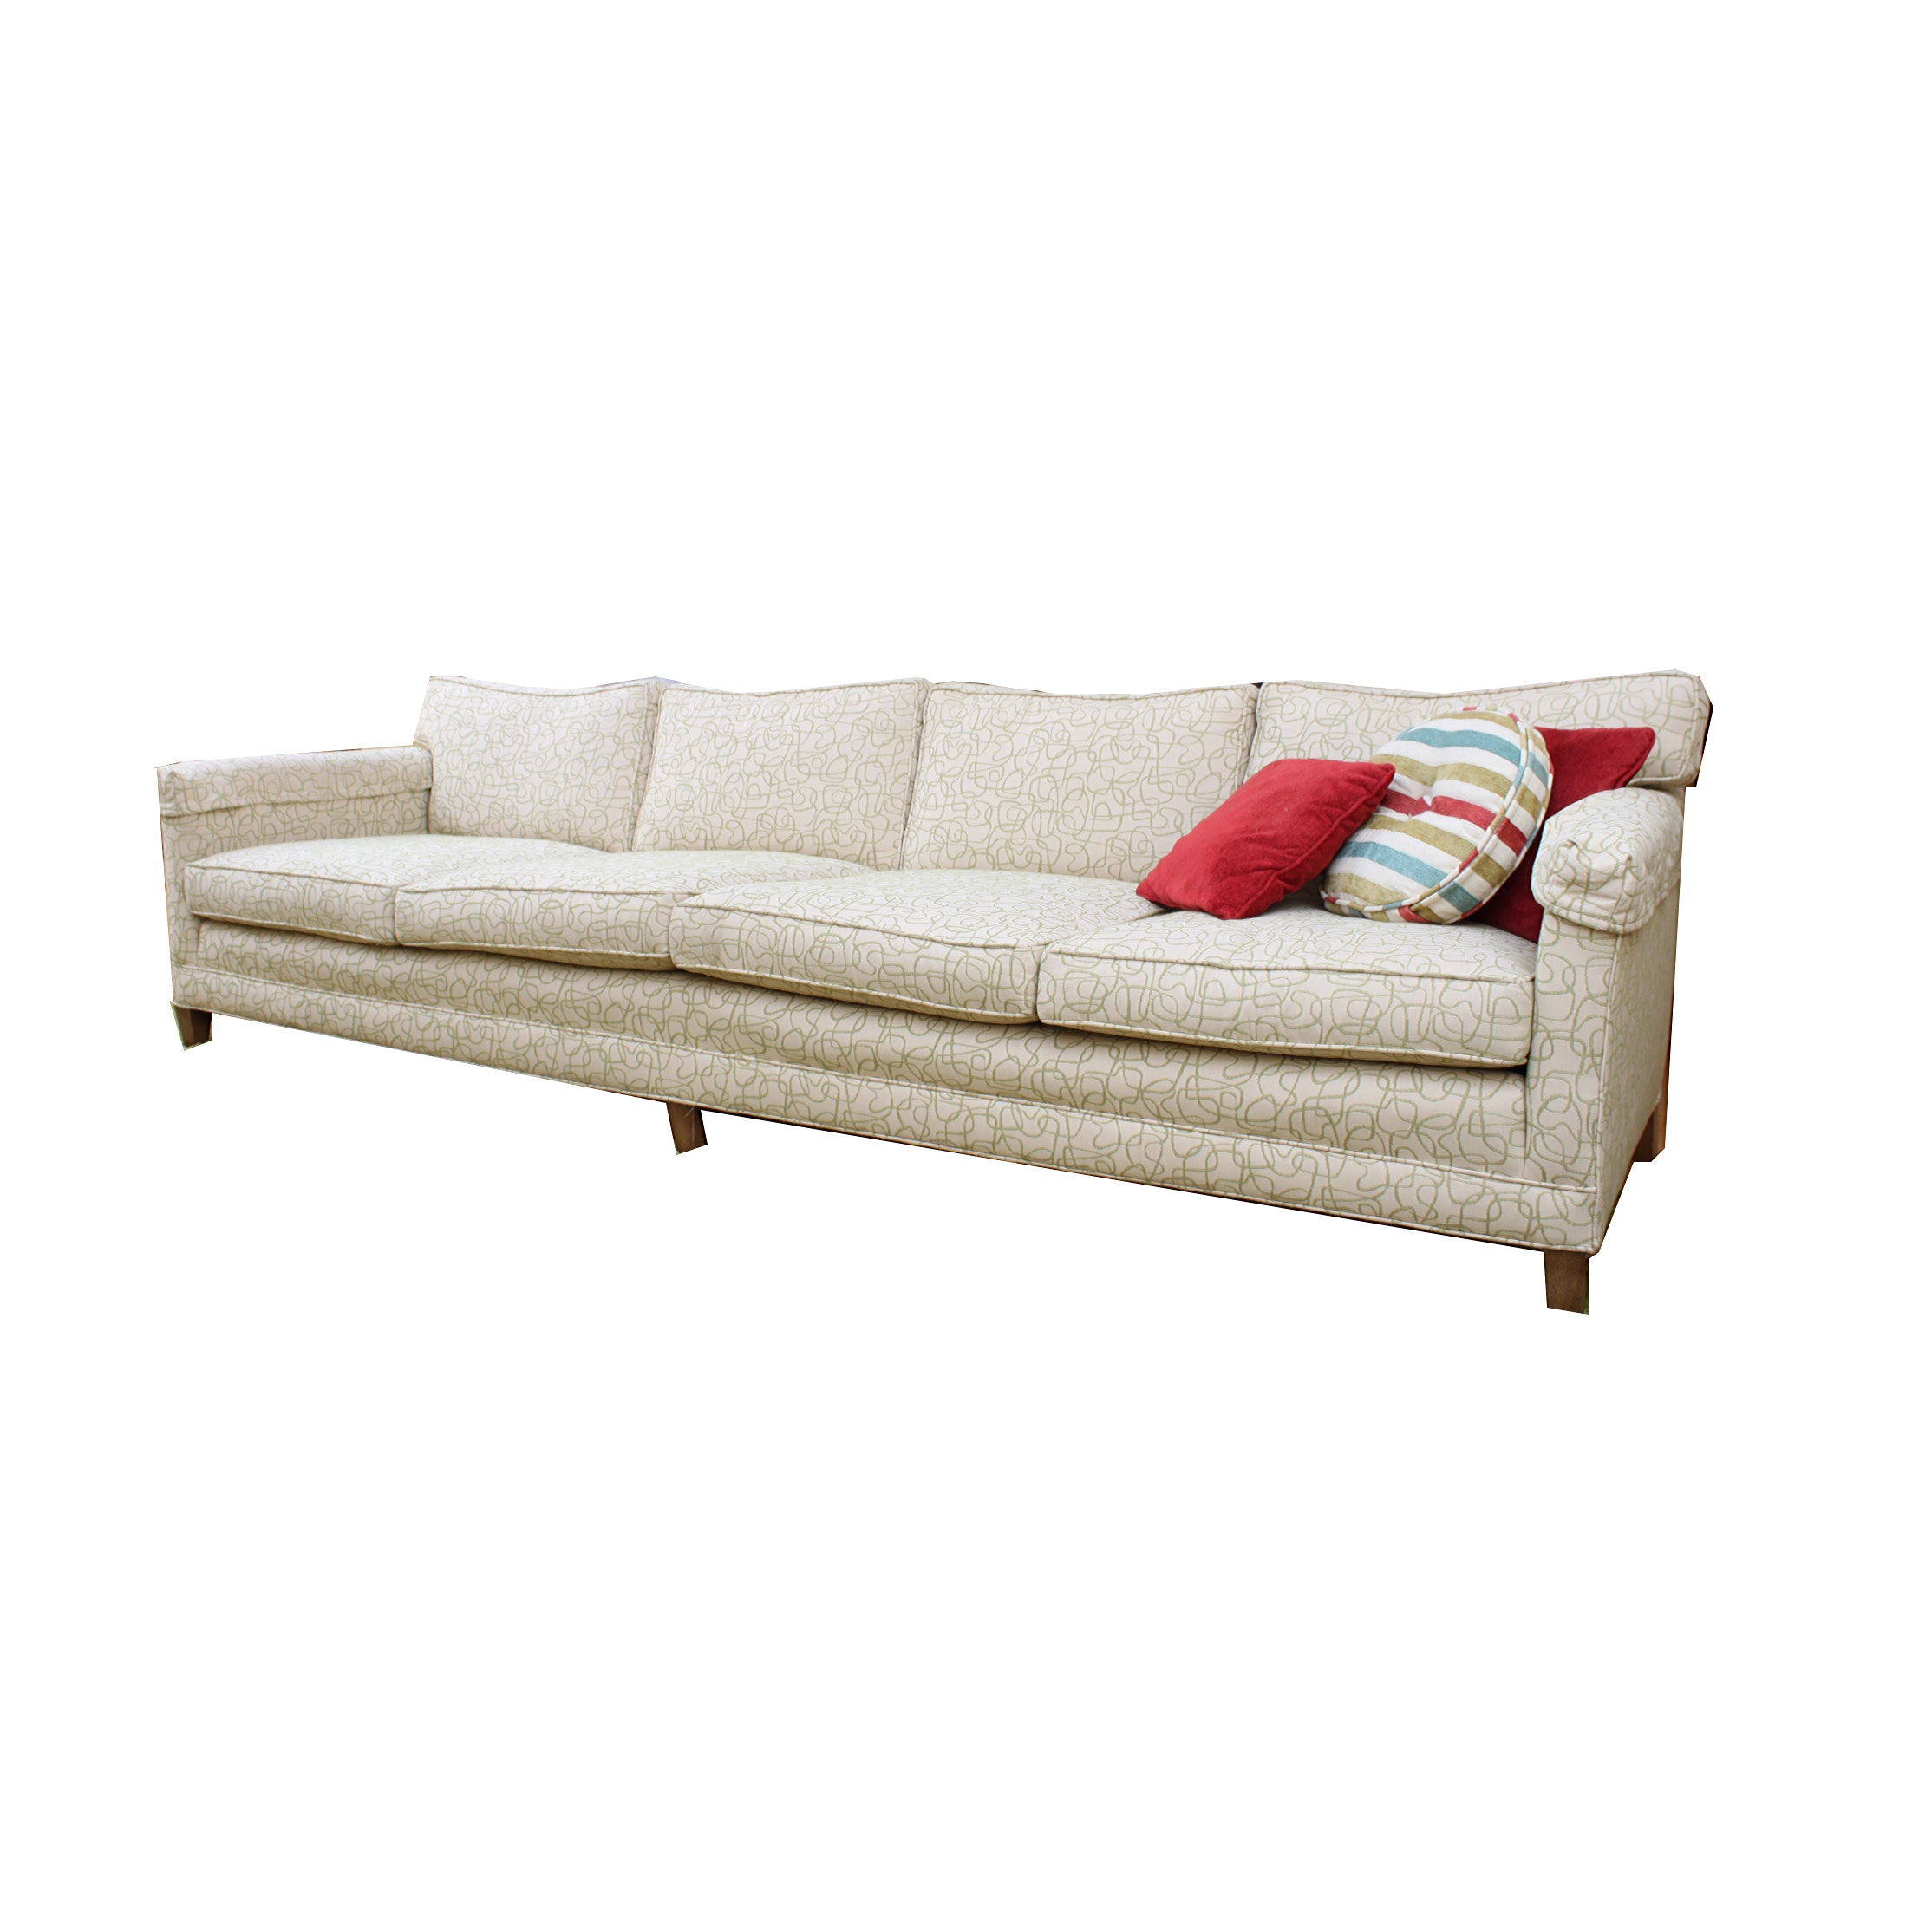 Mid Century Modern Style Upholstered Sofa